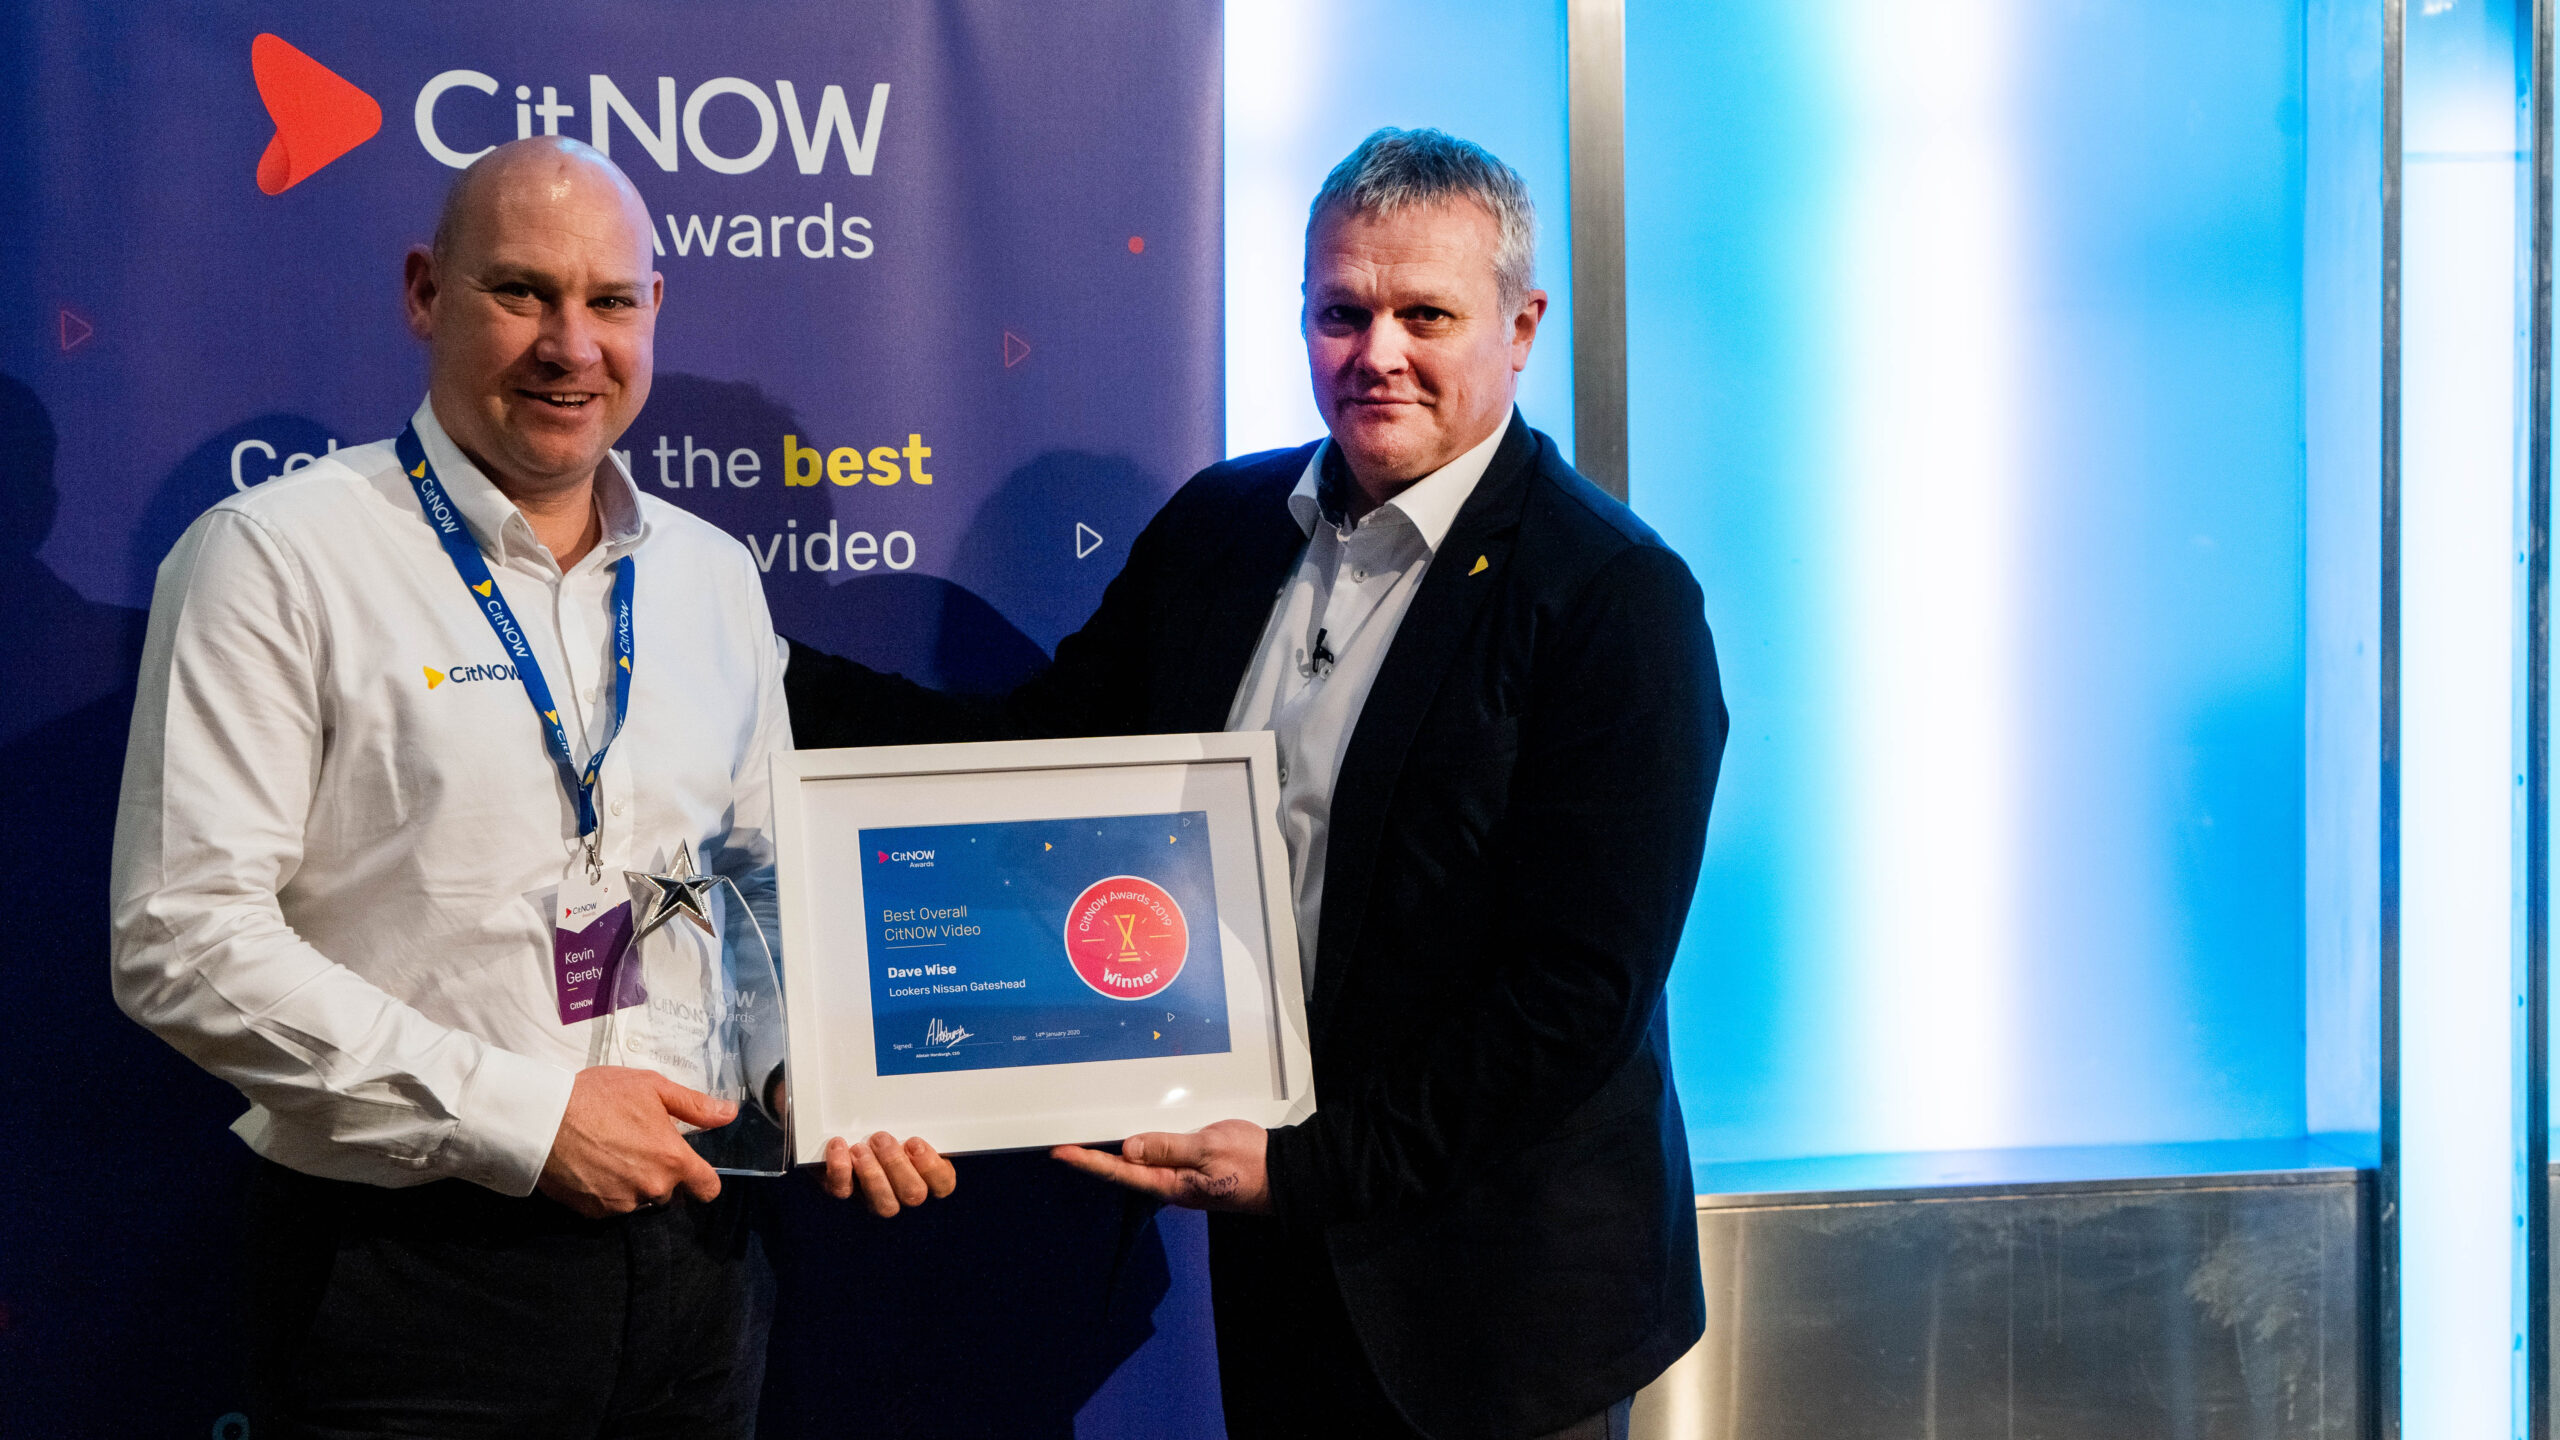 Kevin Collecting the Best overall CitNOW Video Award on behalf of Dave Wise